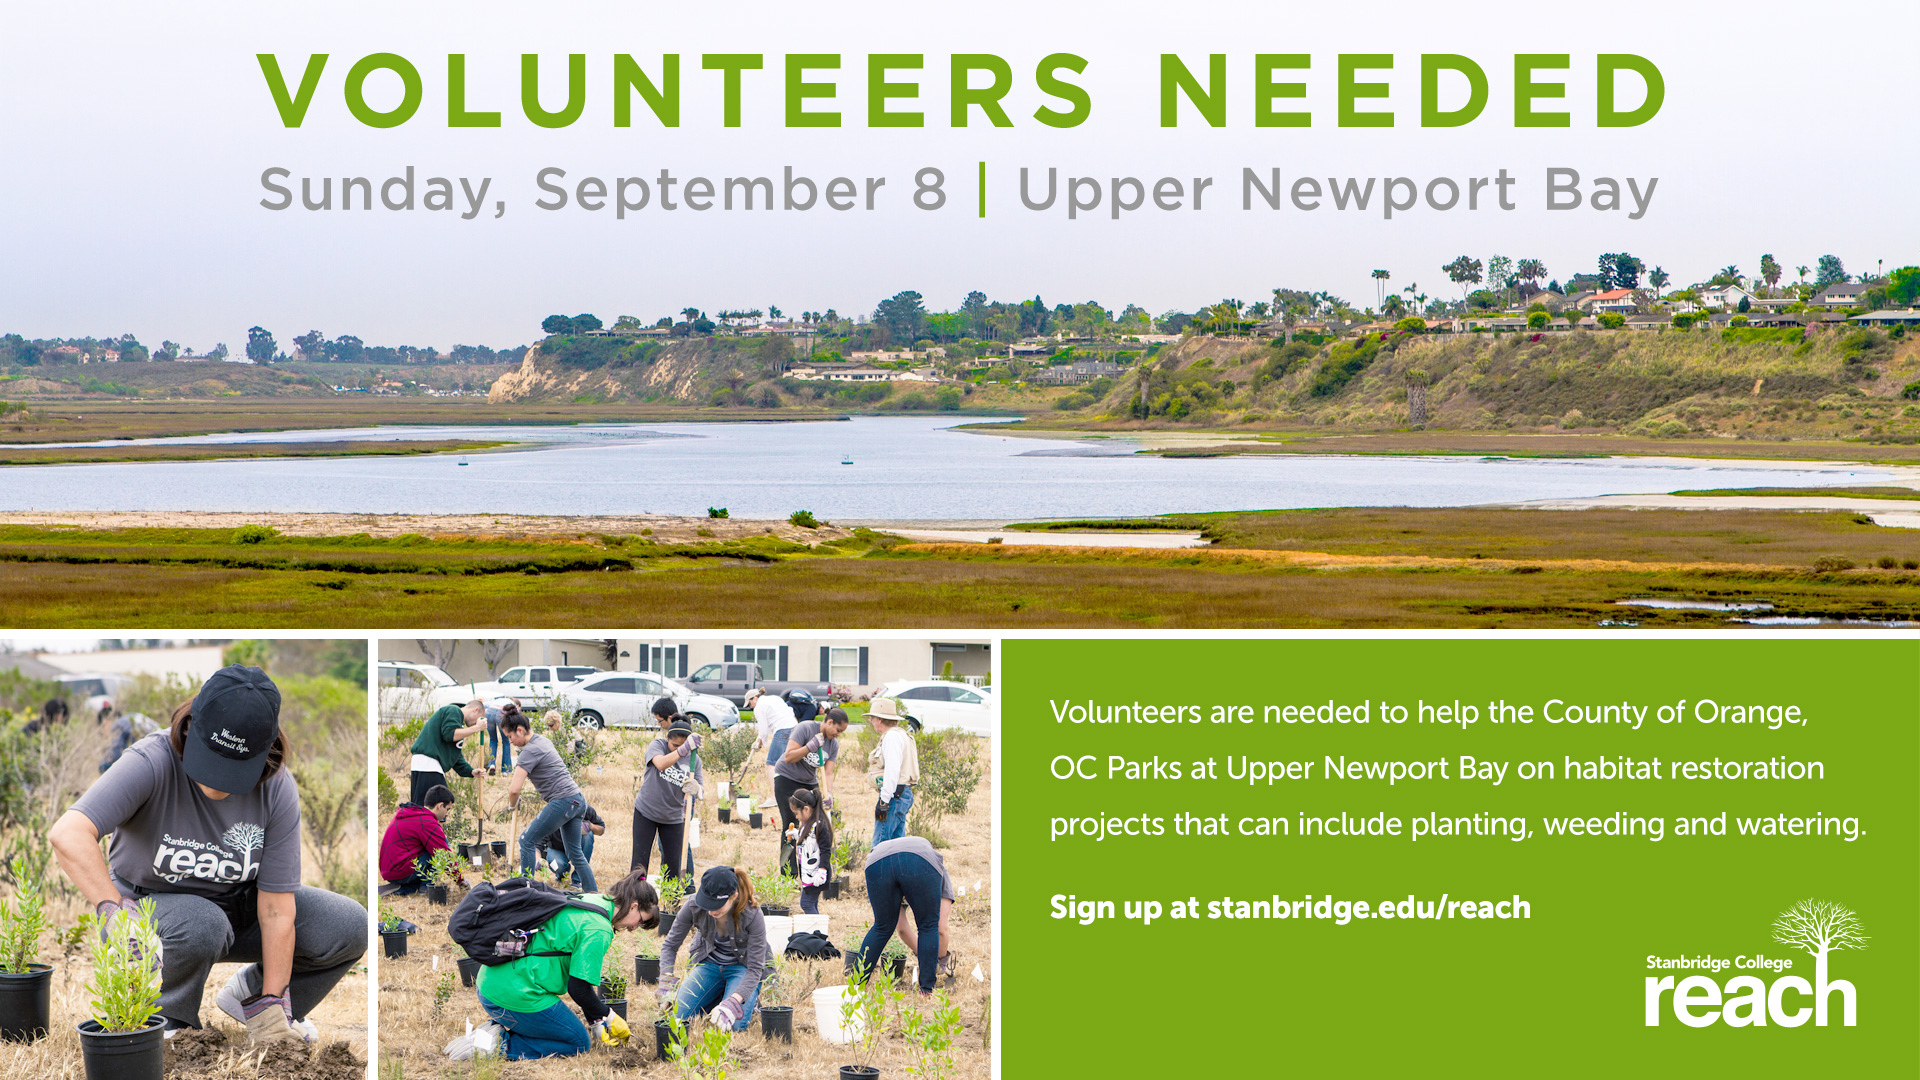 Preserve and Protect: Volunteer with OC Parks on Sunday, September 8th, 2013